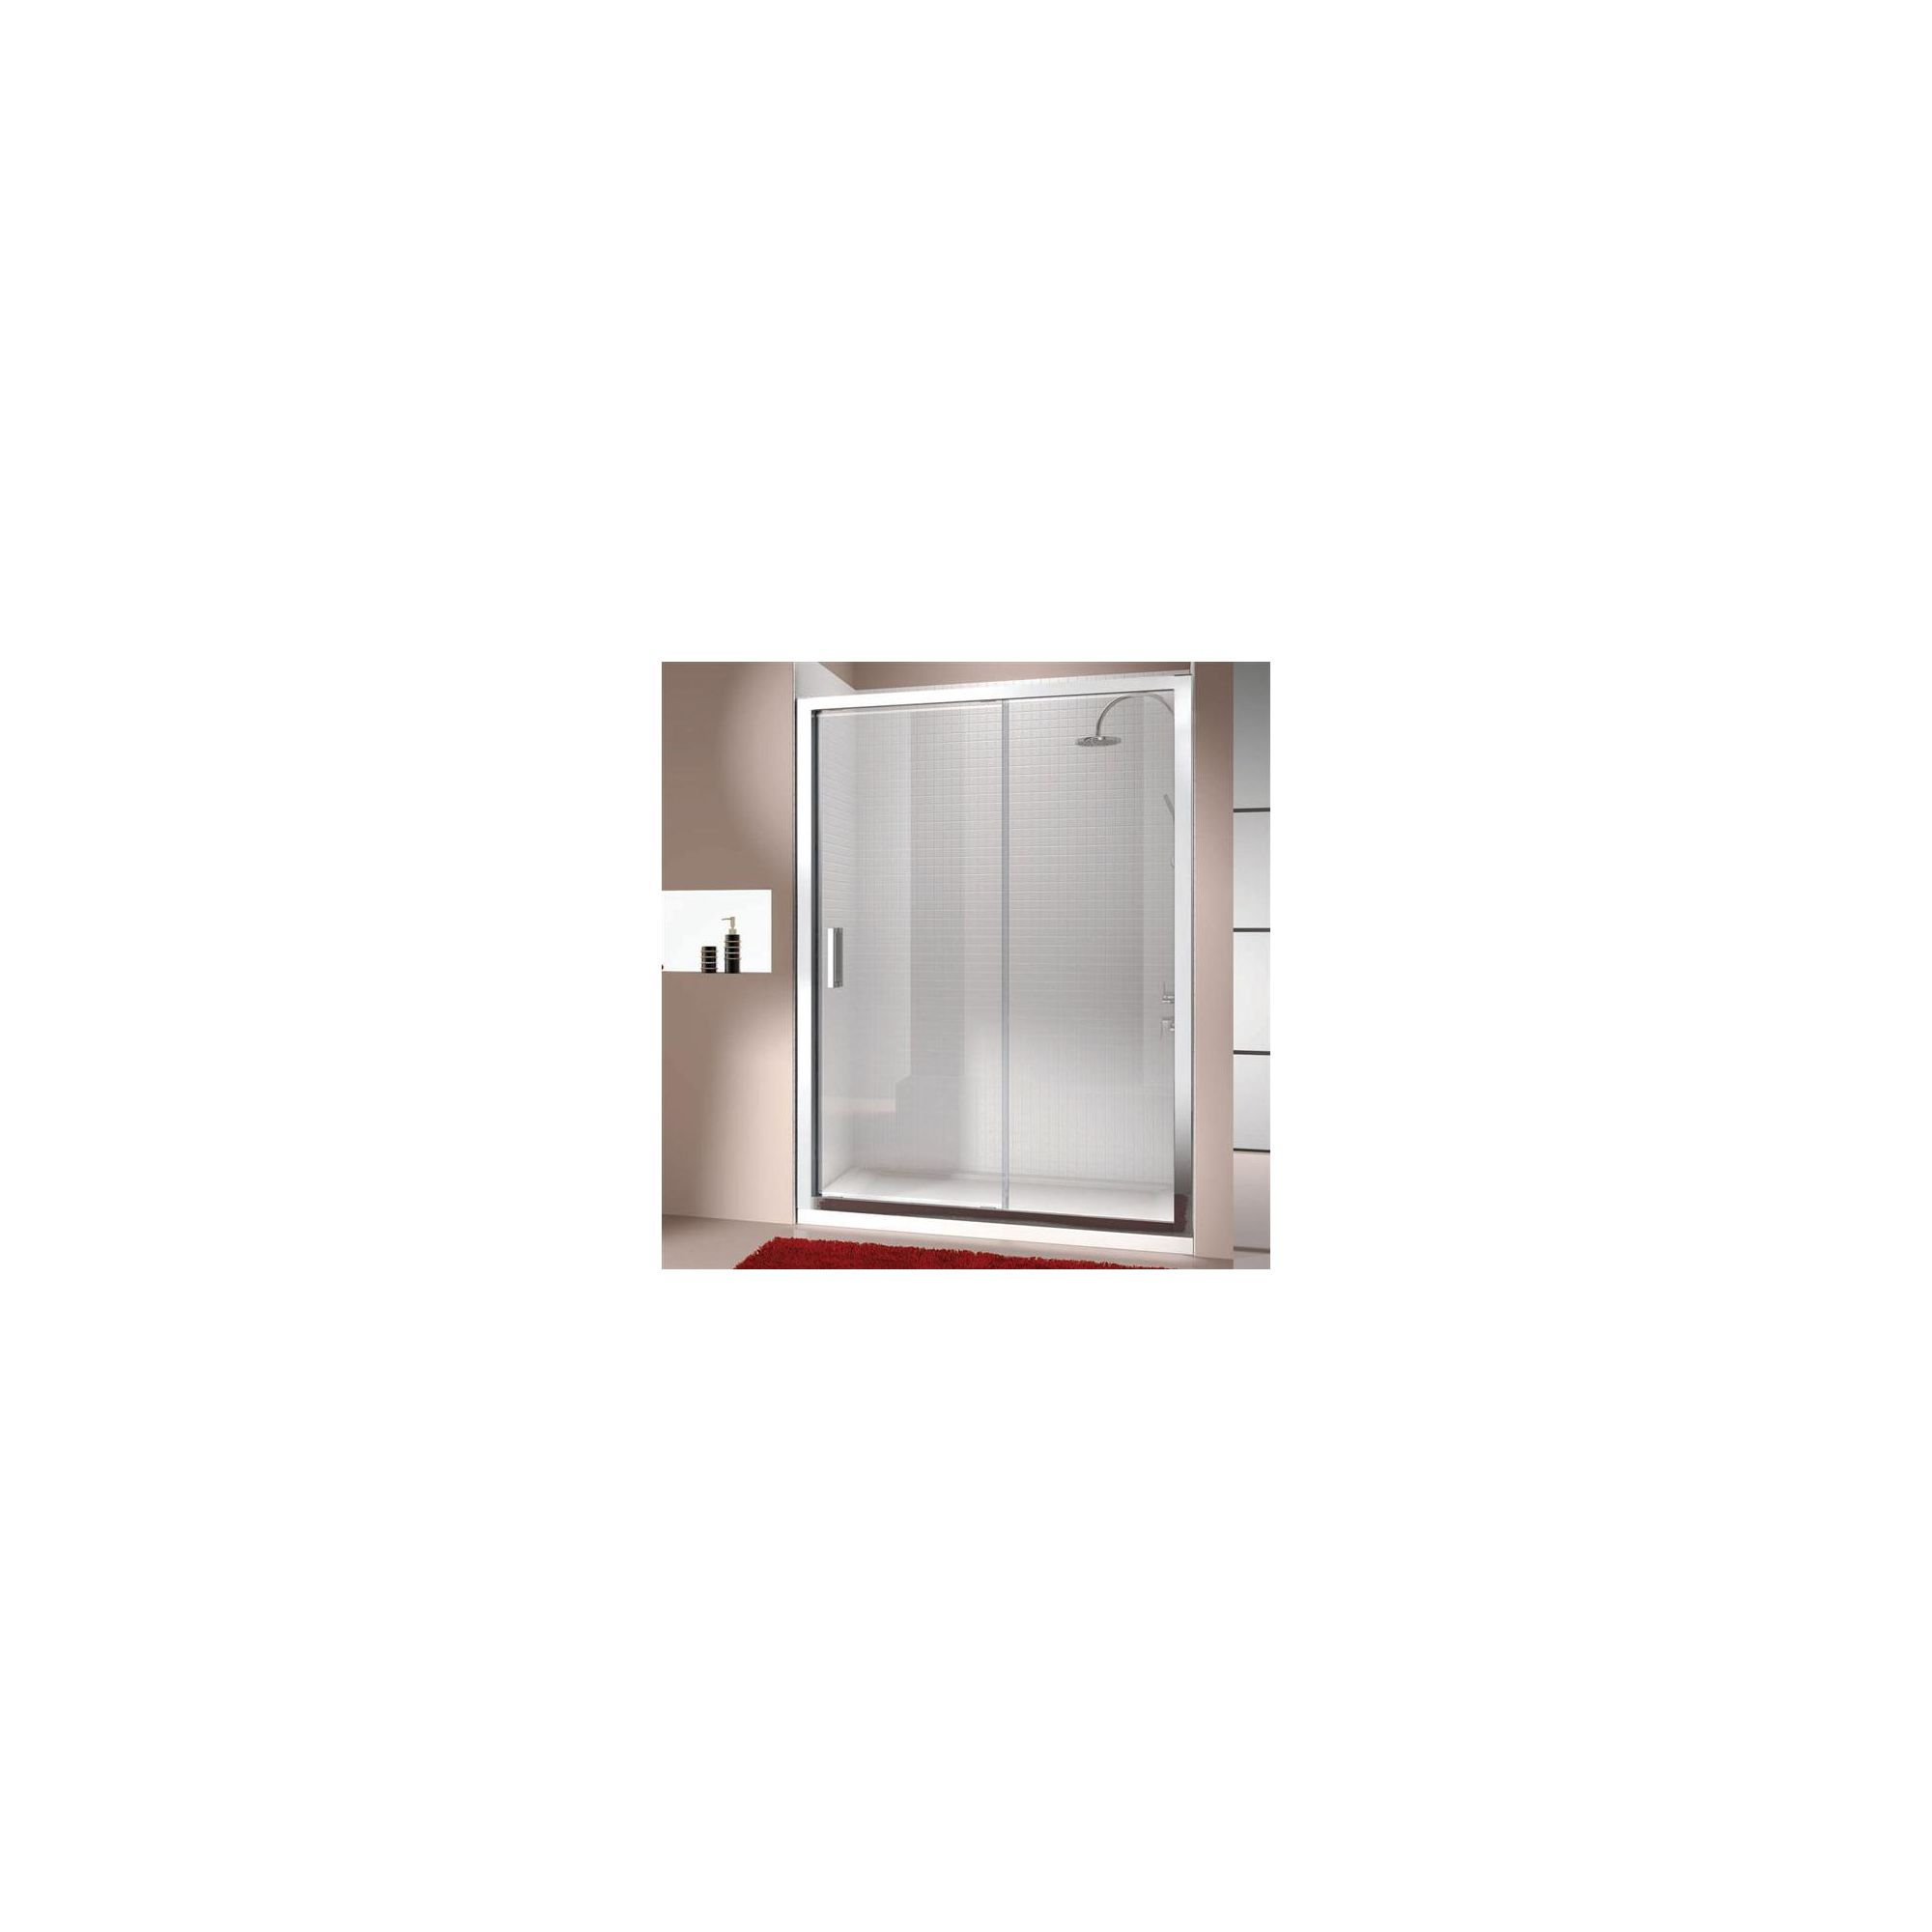 Merlyn Vivid Eight Sliding Door Alcove Shower Enclosure, 1000mm x 800mm, Low Profile Tray, 8mm Glass at Tesco Direct